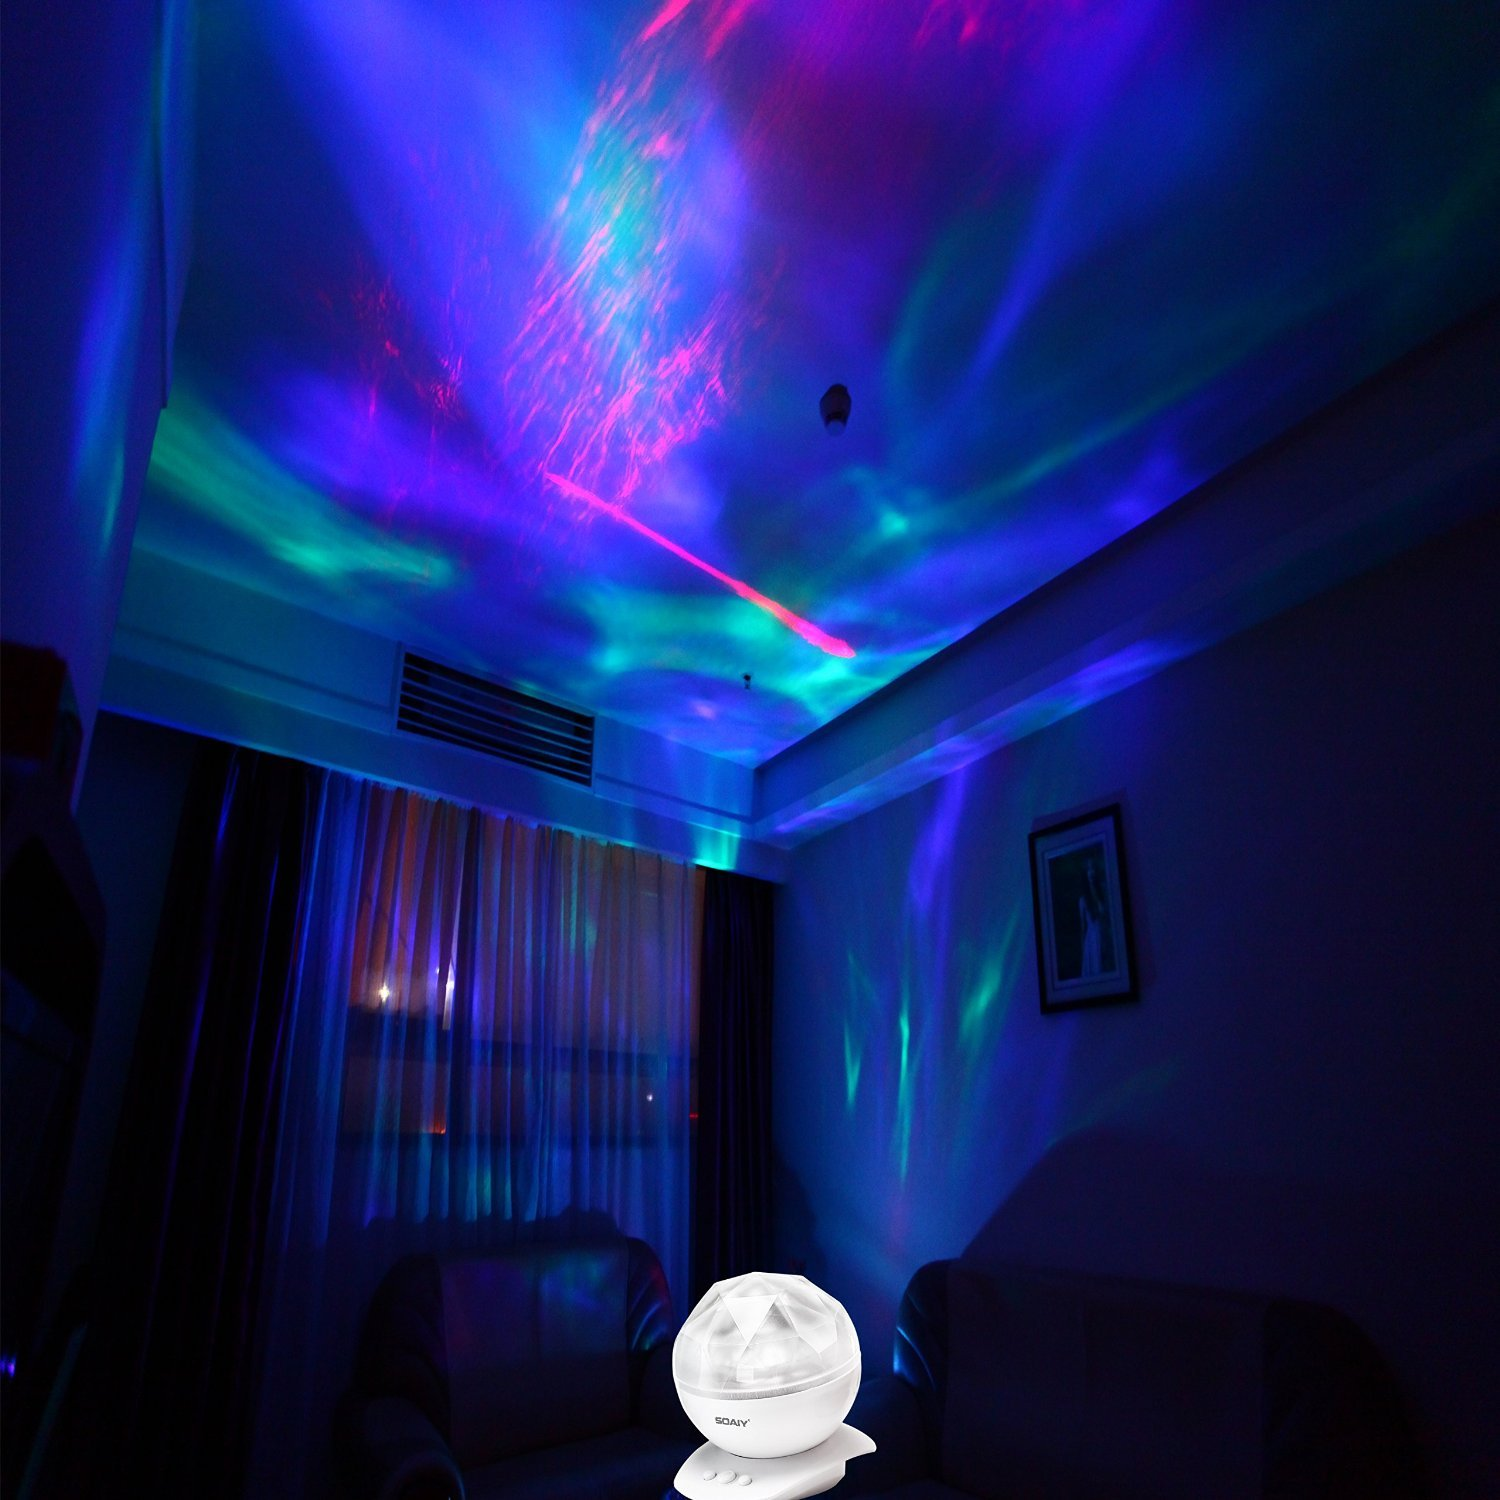 Bedroom ceiling lights stars - Soaiy Rotation Sleep Soothing Color Changing Aurora Night Light Projector With Build In Speaker Relaxing Light Show Mood Light For Baby Nursery